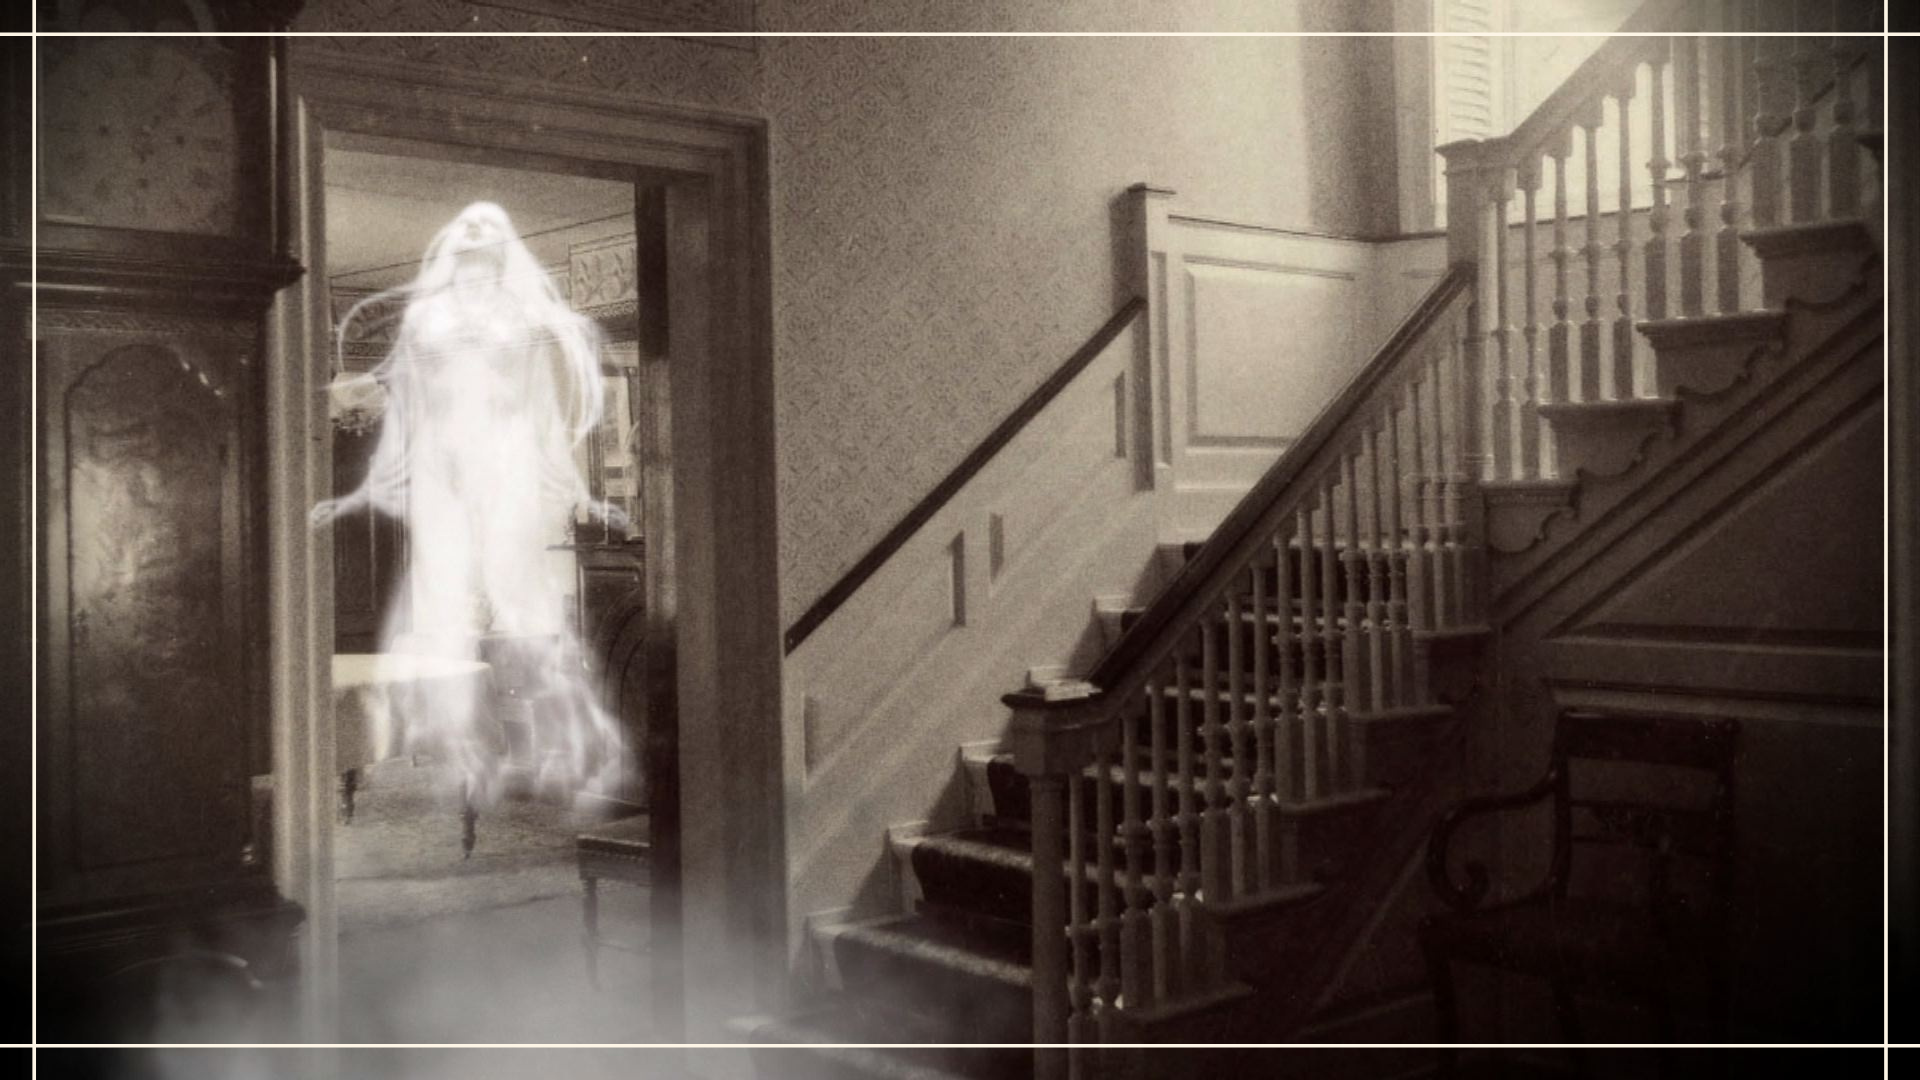 A whispy ghost in front of a stairway in an old home